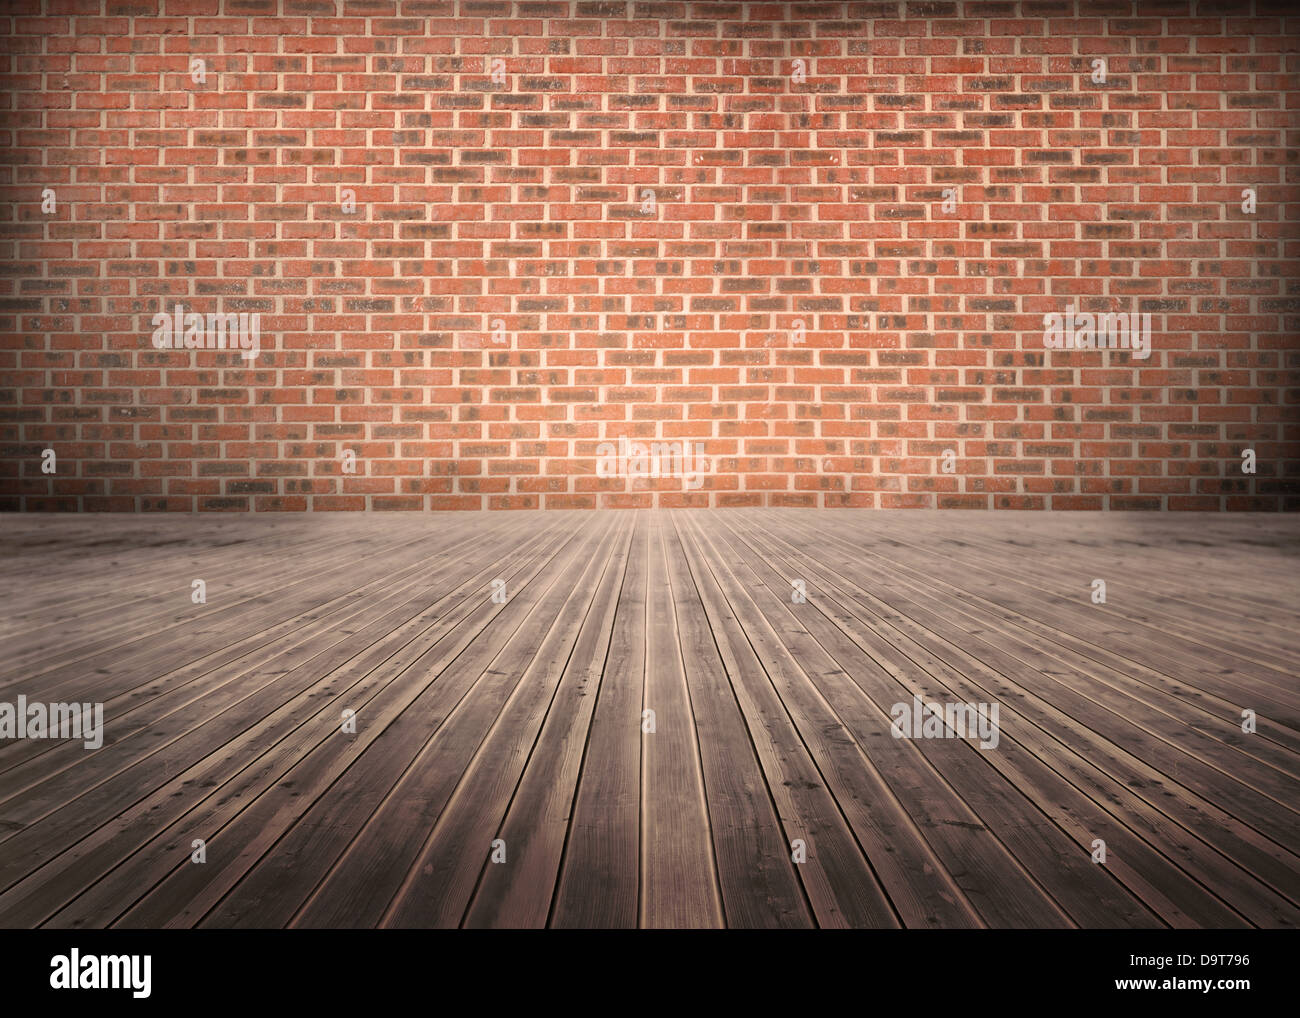 Room of floorboards with bricks wall Stock Photo